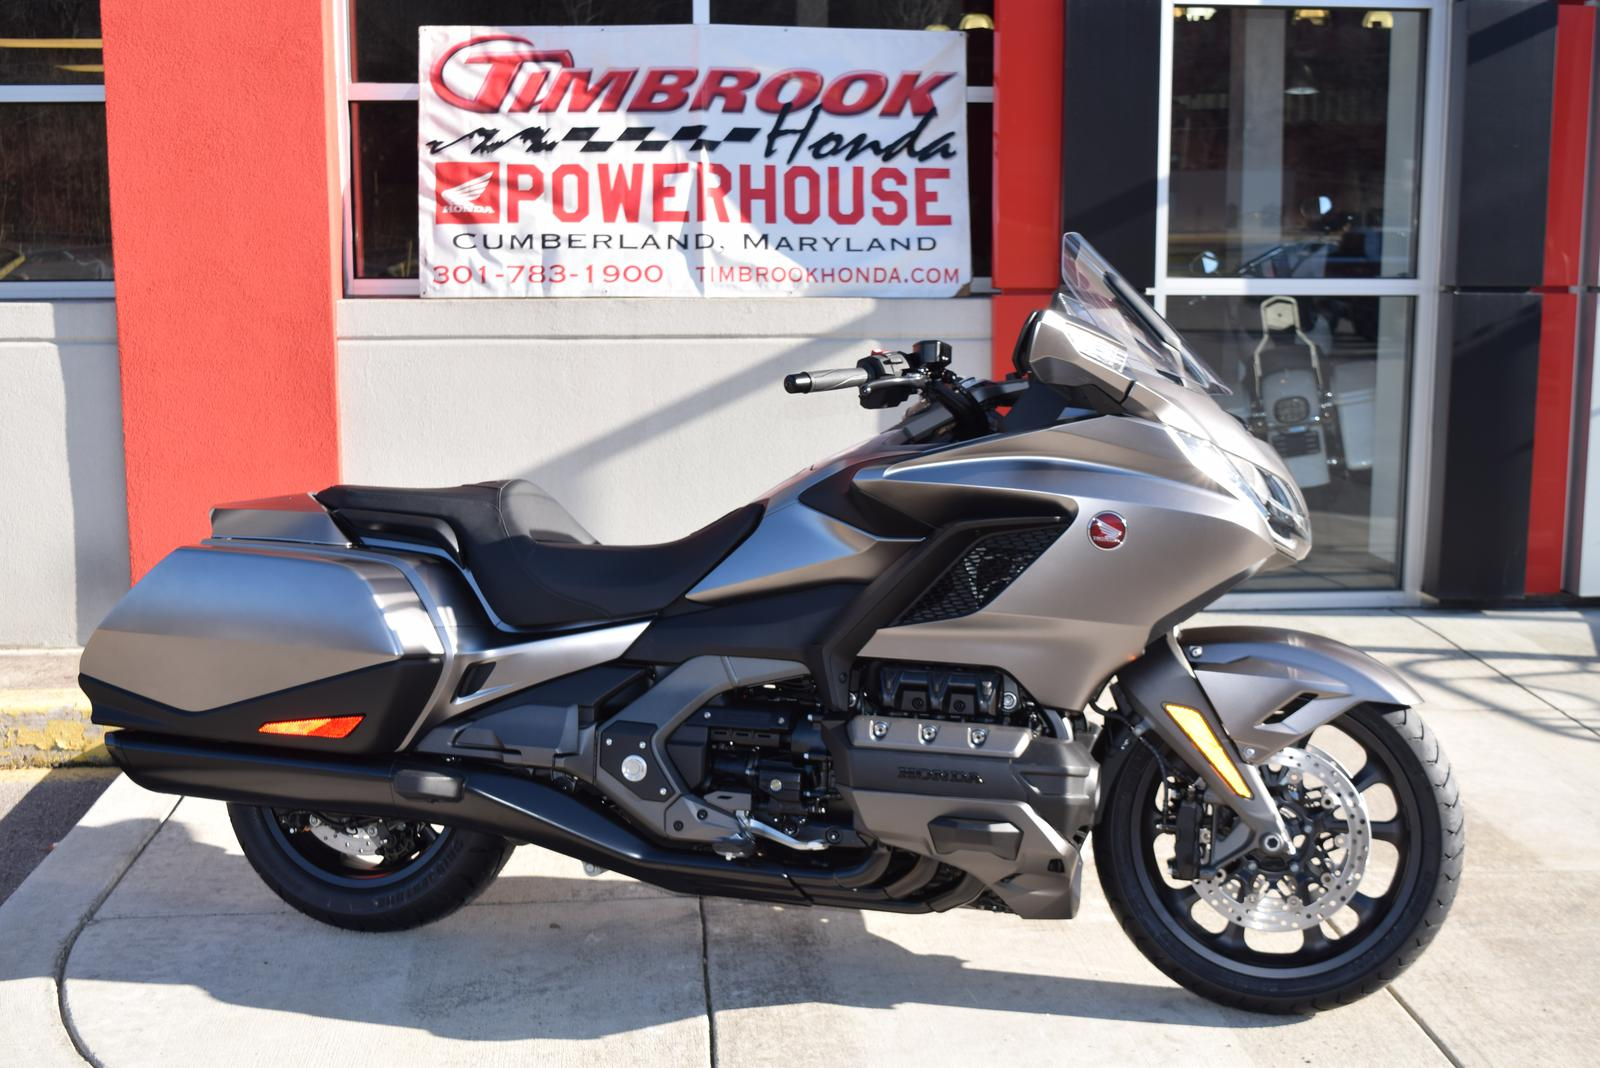 2018 Honda Goldwing For Sale In Cumberland Md Timbrook Gl1800 Wiring Diagram Communication 074